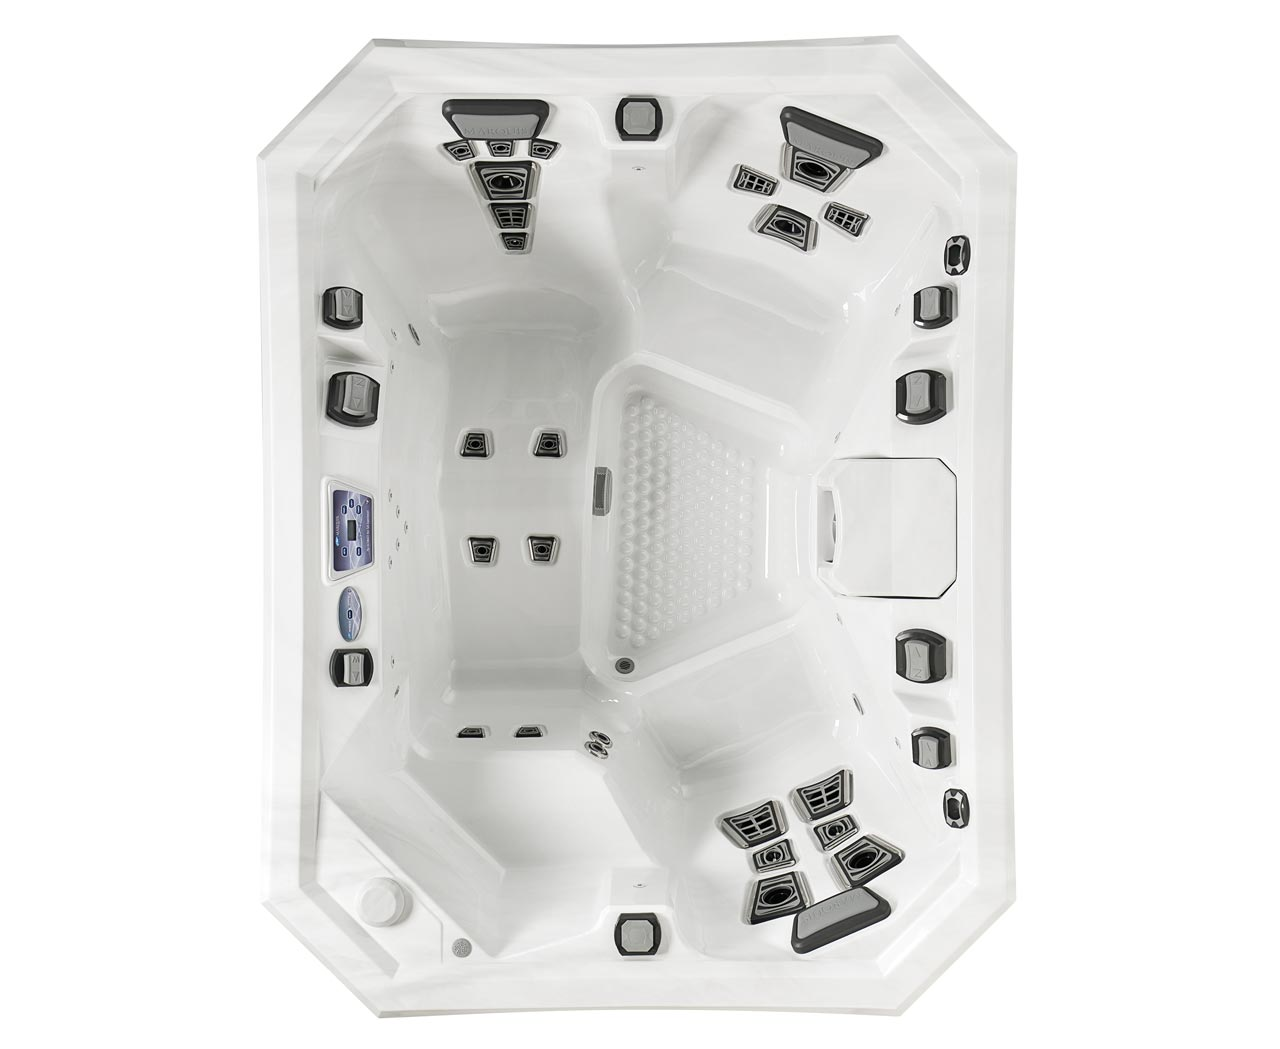 Vector 21 Hot Tubs Best In Backyards Tub Wiring Cost V65l